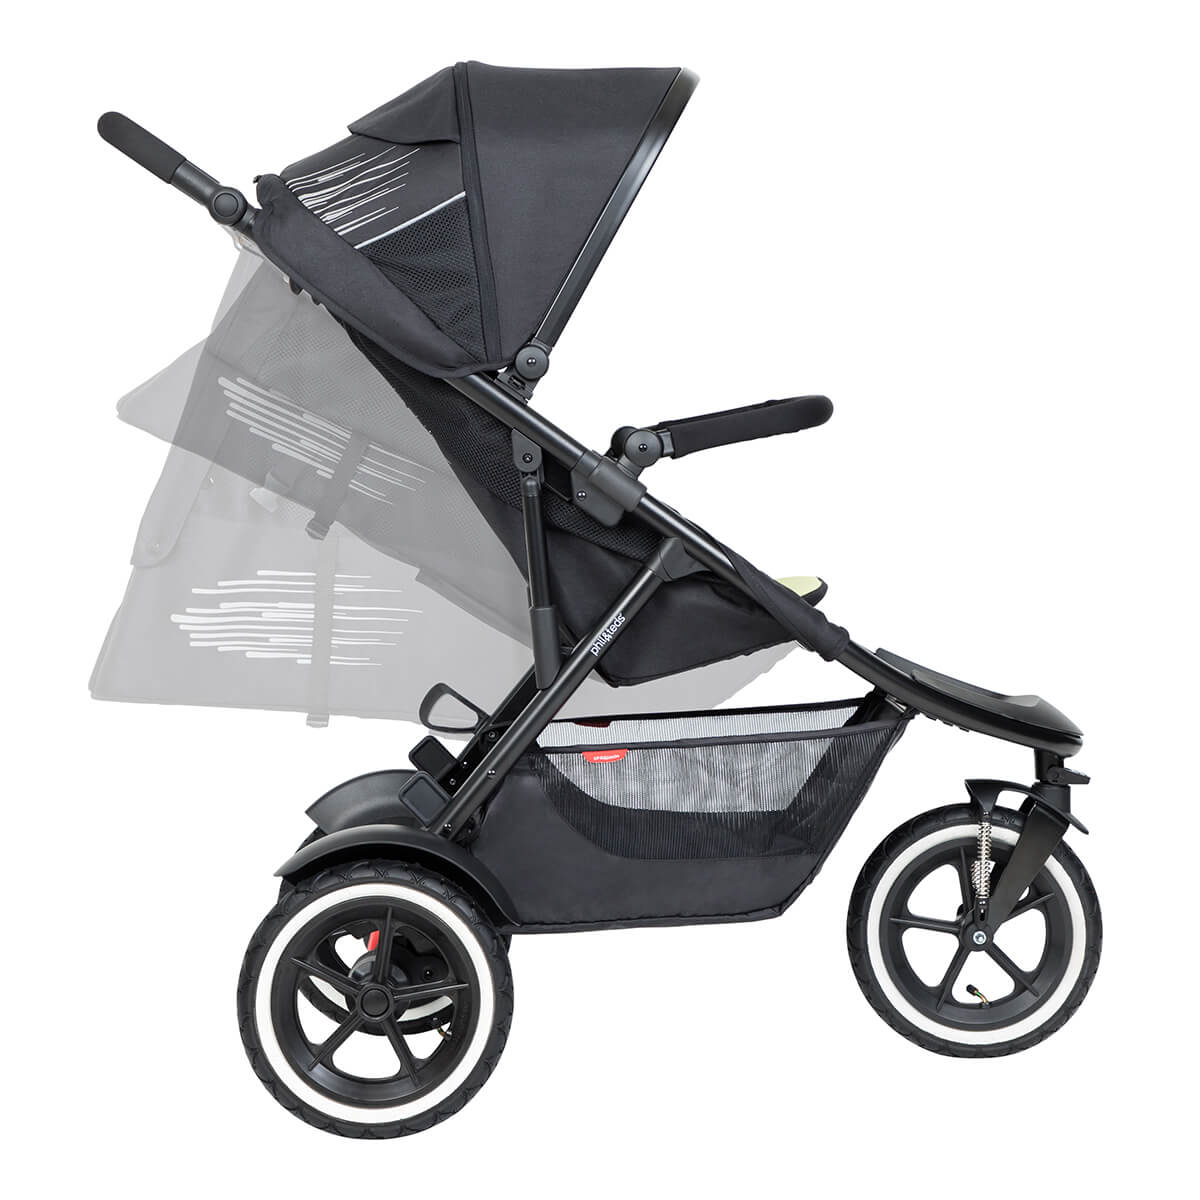 https://cdn.accentuate.io/4509528326232/19272668184664/philteds-sport-buggy-can-recline-in-multiple-angles-including-full-recline-for-newborn-baby-v1626484468109.jpg?1200x1200